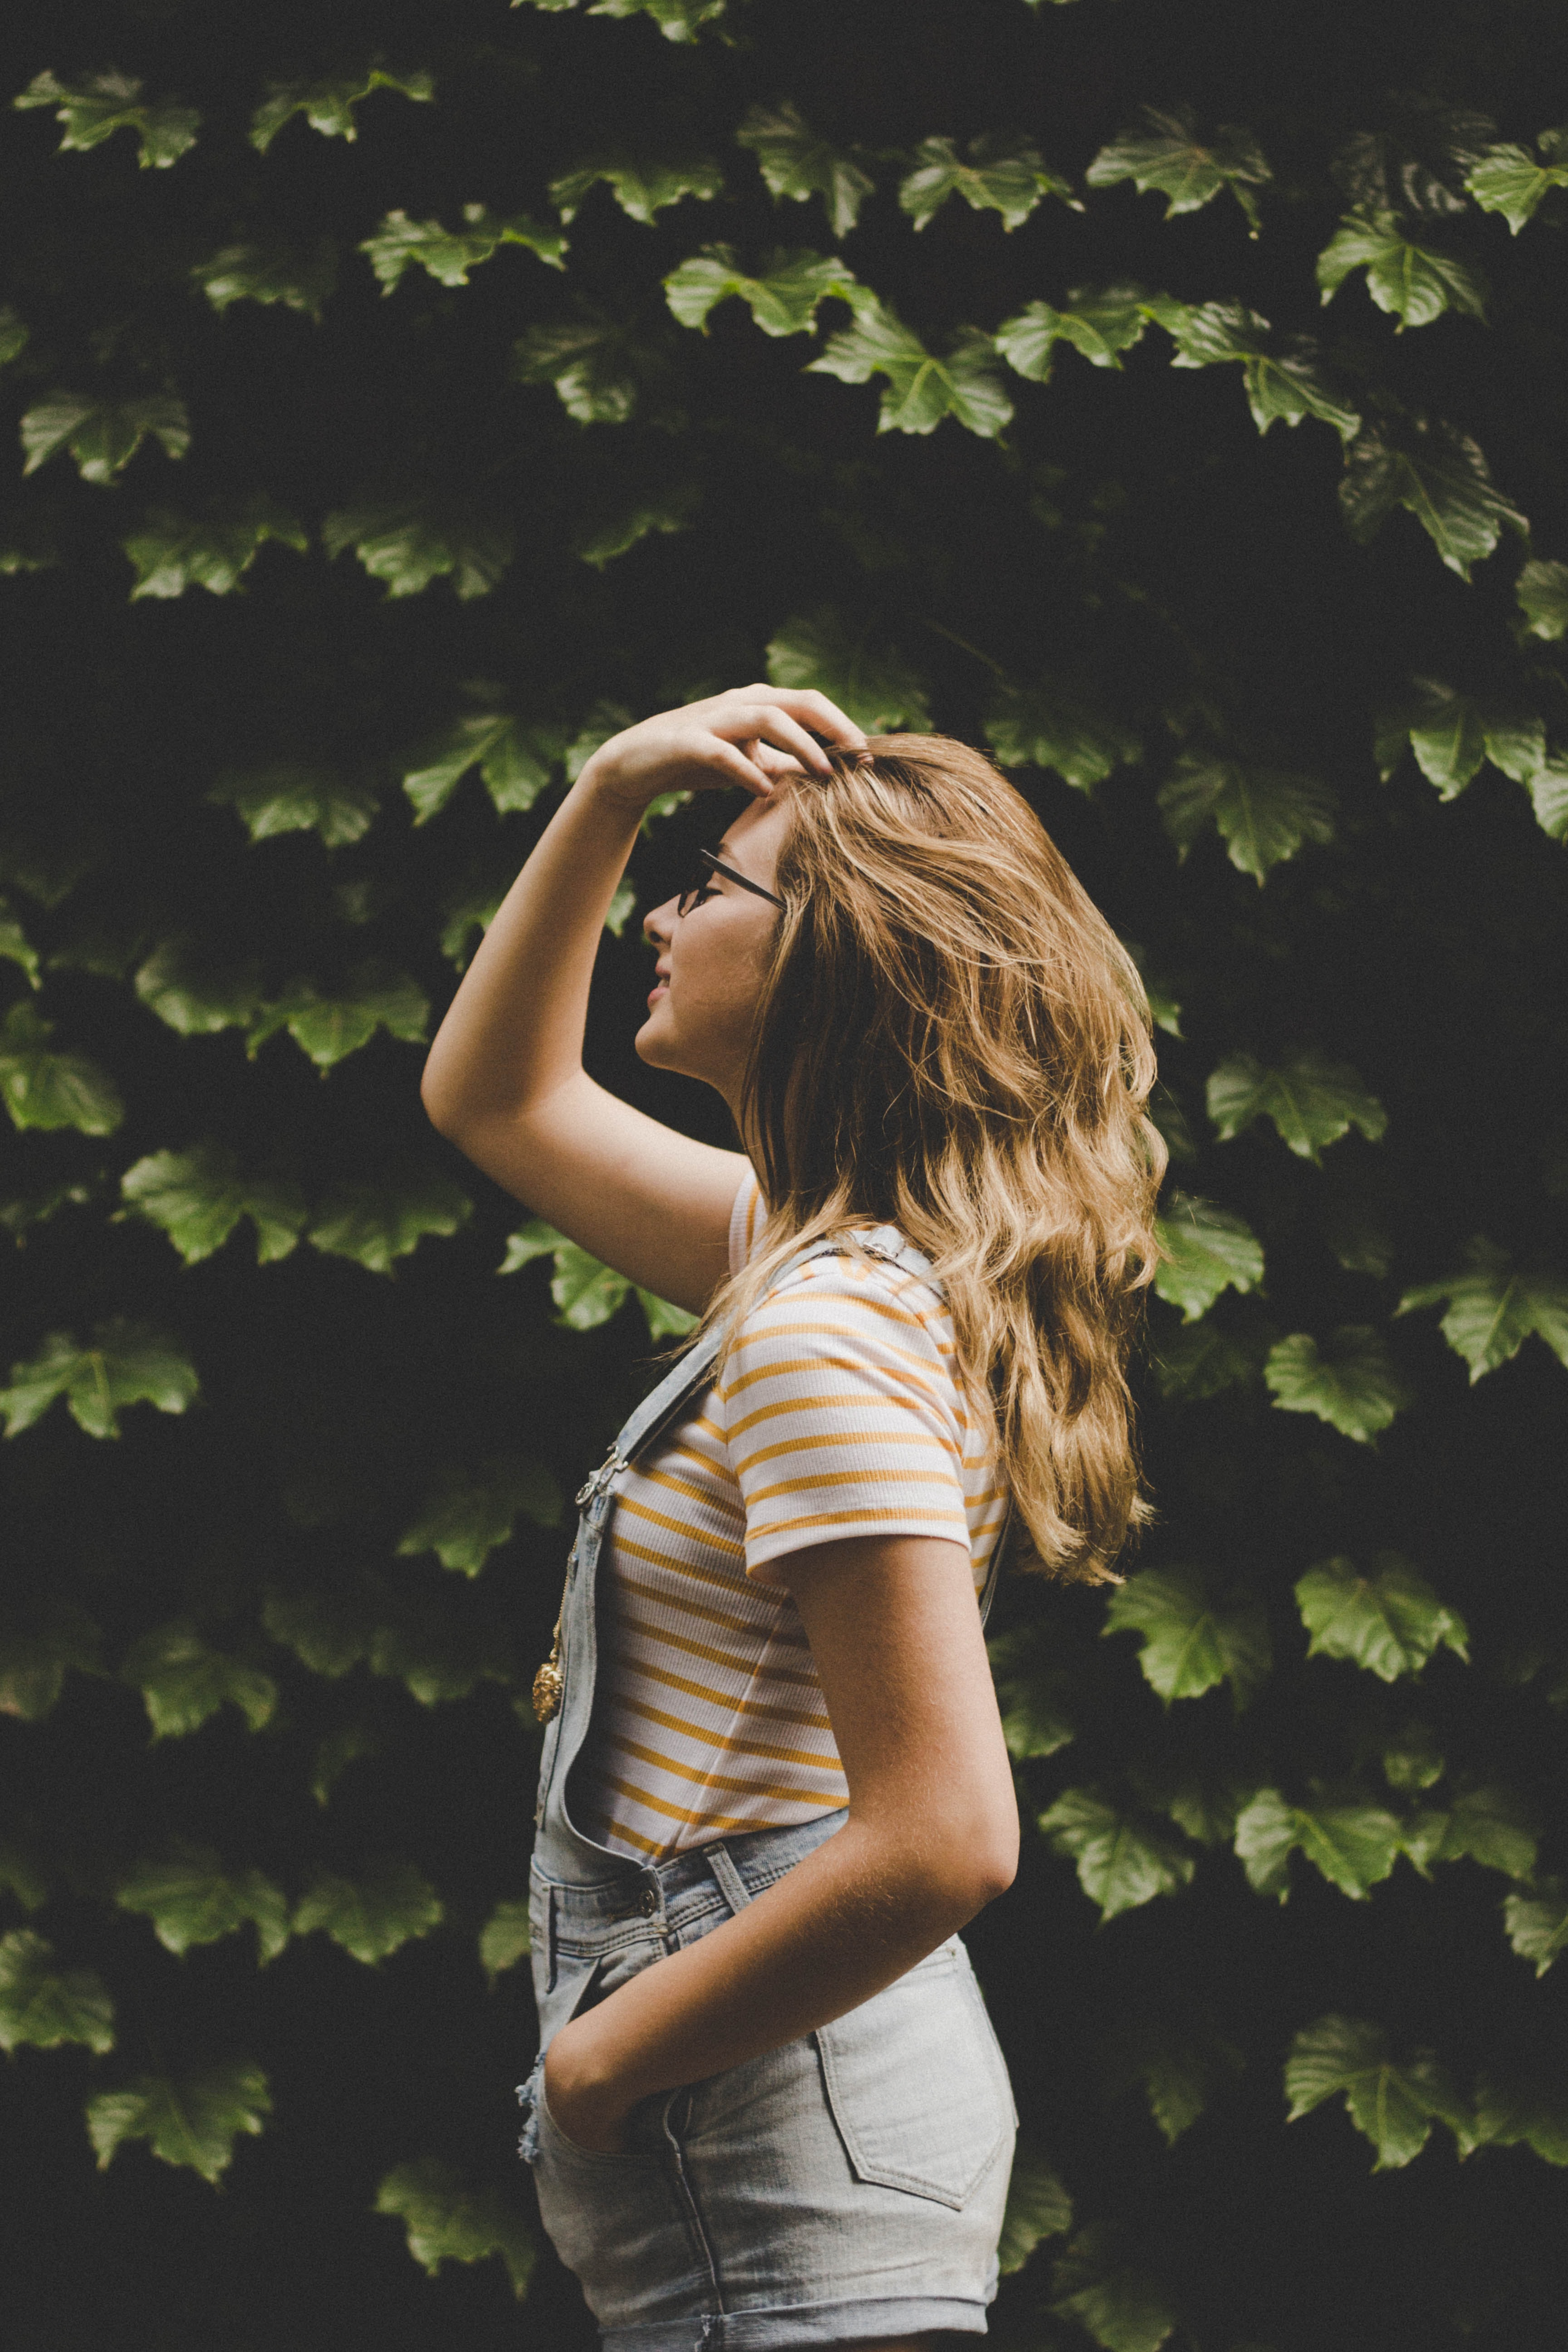 shallow focus photography of woman standing in front of plants facing sideways